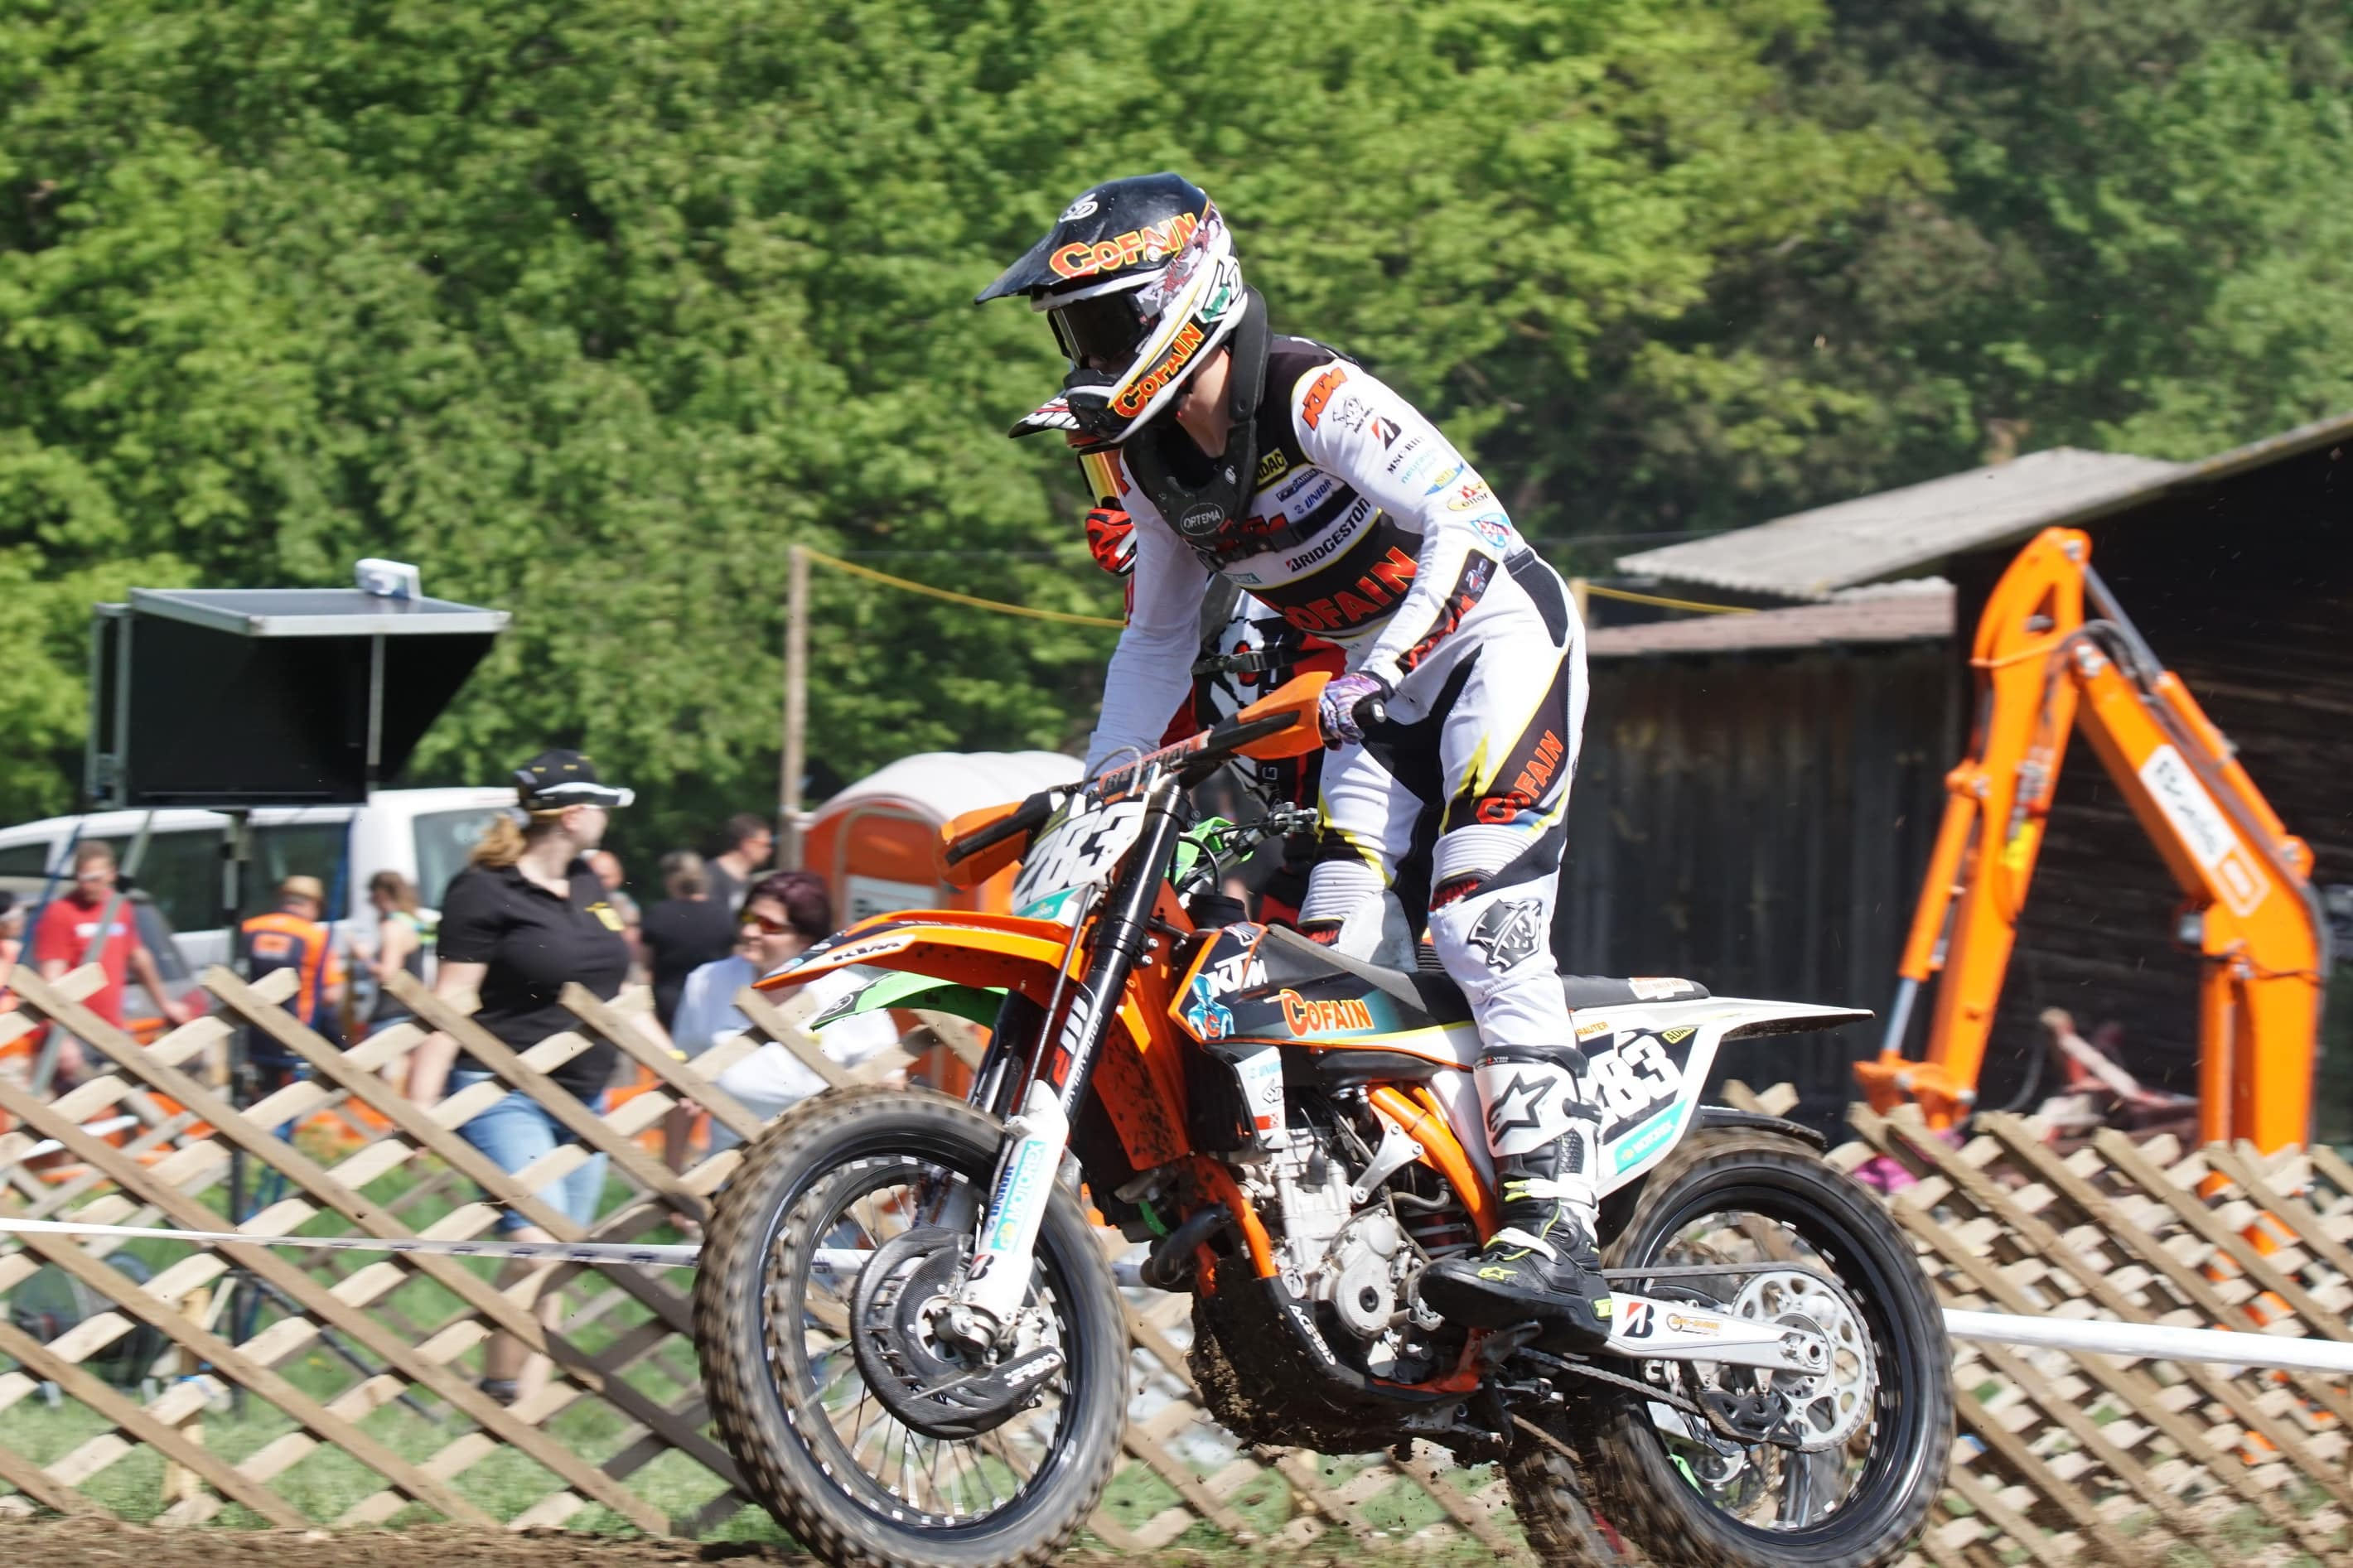 DSC 214_Moto Cross Sittendorf Teil1 am 29.04.2018